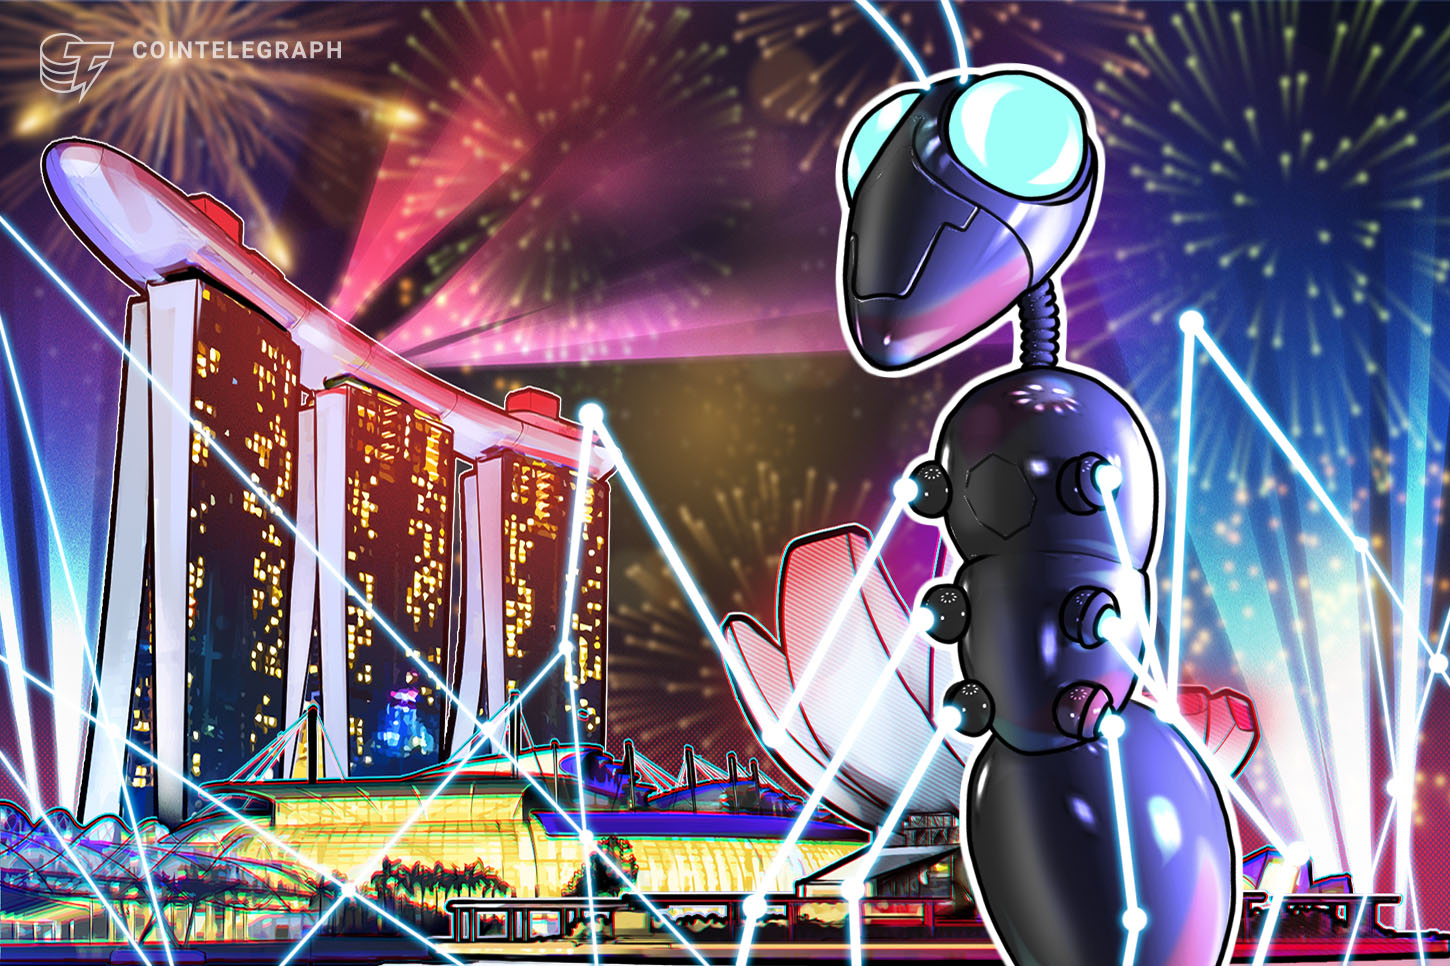 Singapore's Blockchain Landscape Has Grown More than 50% Since Last Year